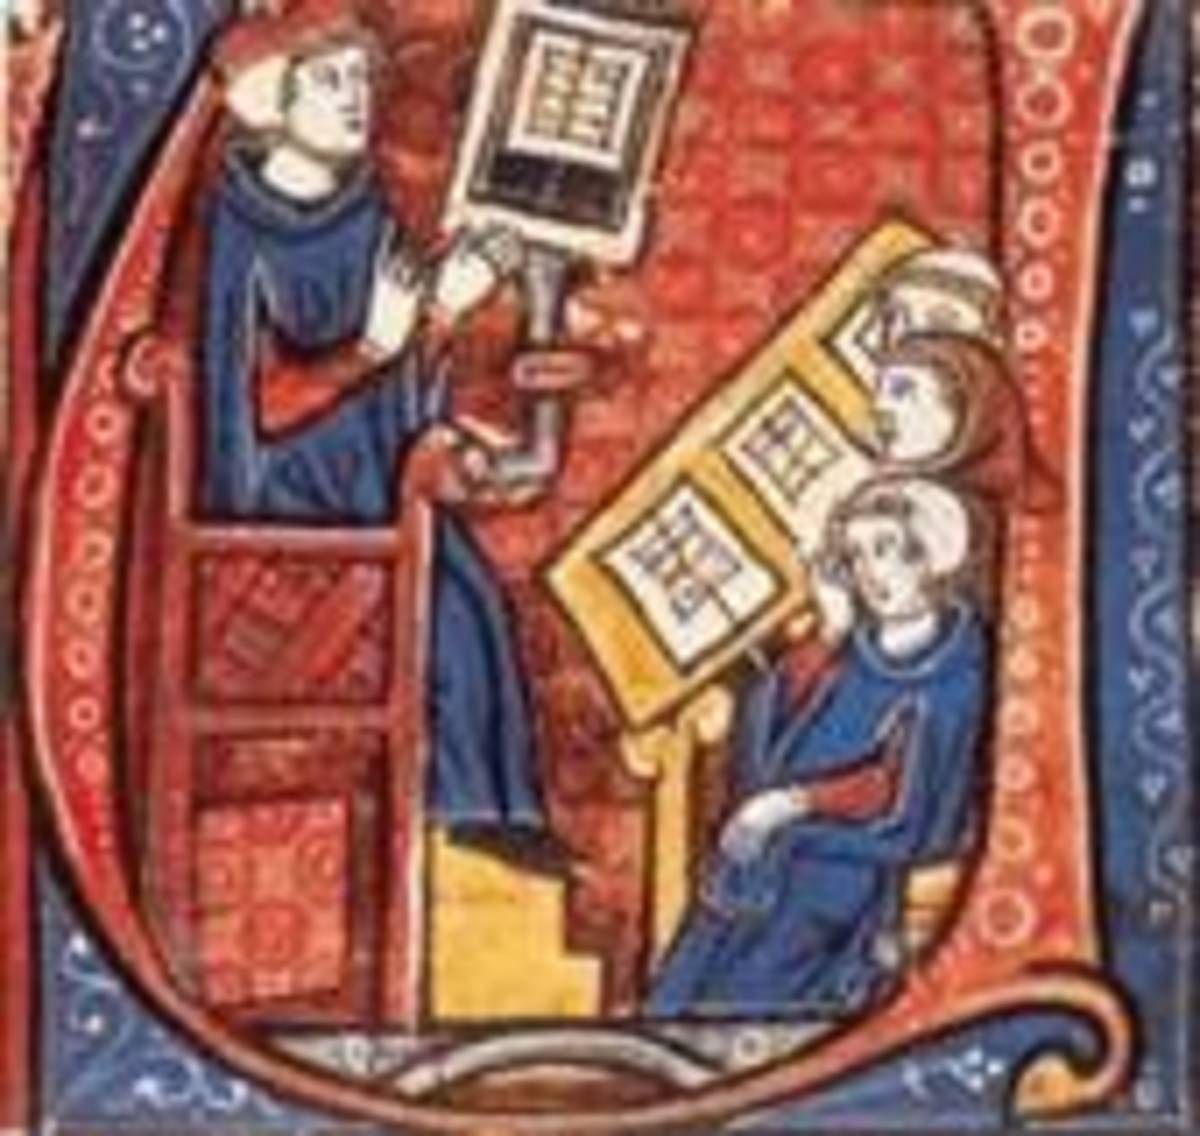 13th-century illuminated manuscript showing students at university